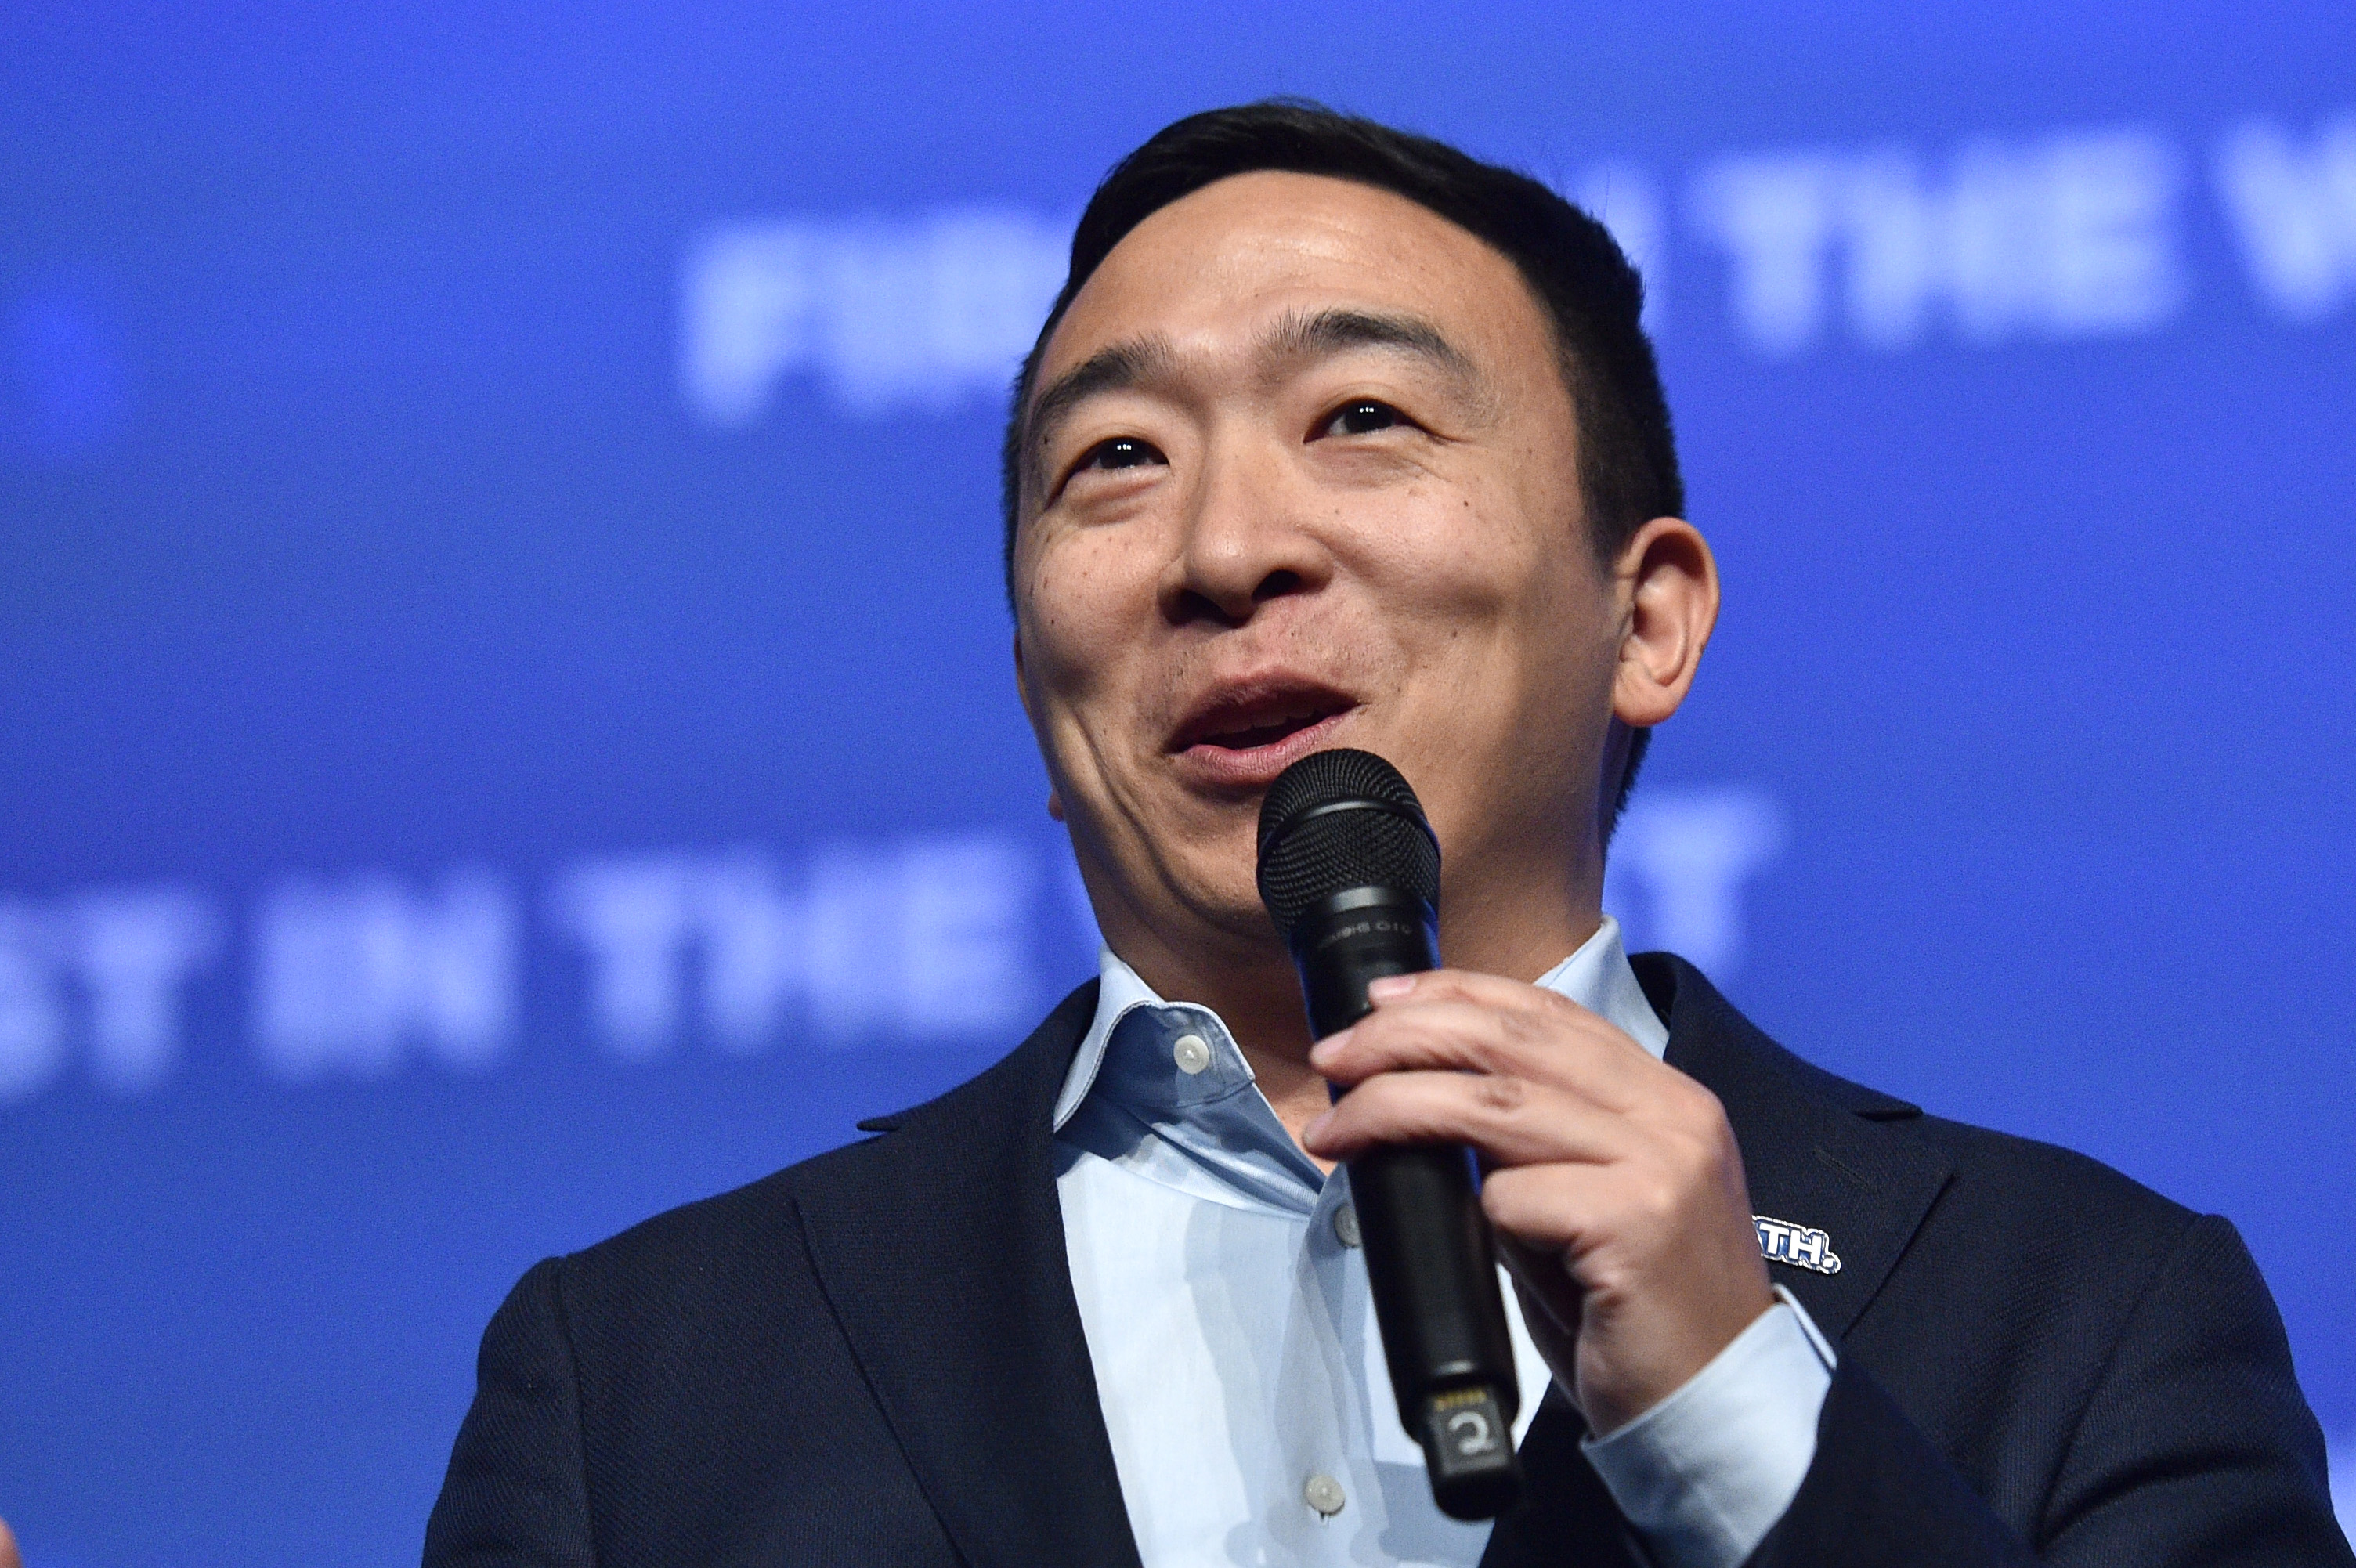 2020 Contender Andrew Yang Says Impeachment 'Is Going to Be a Loser'